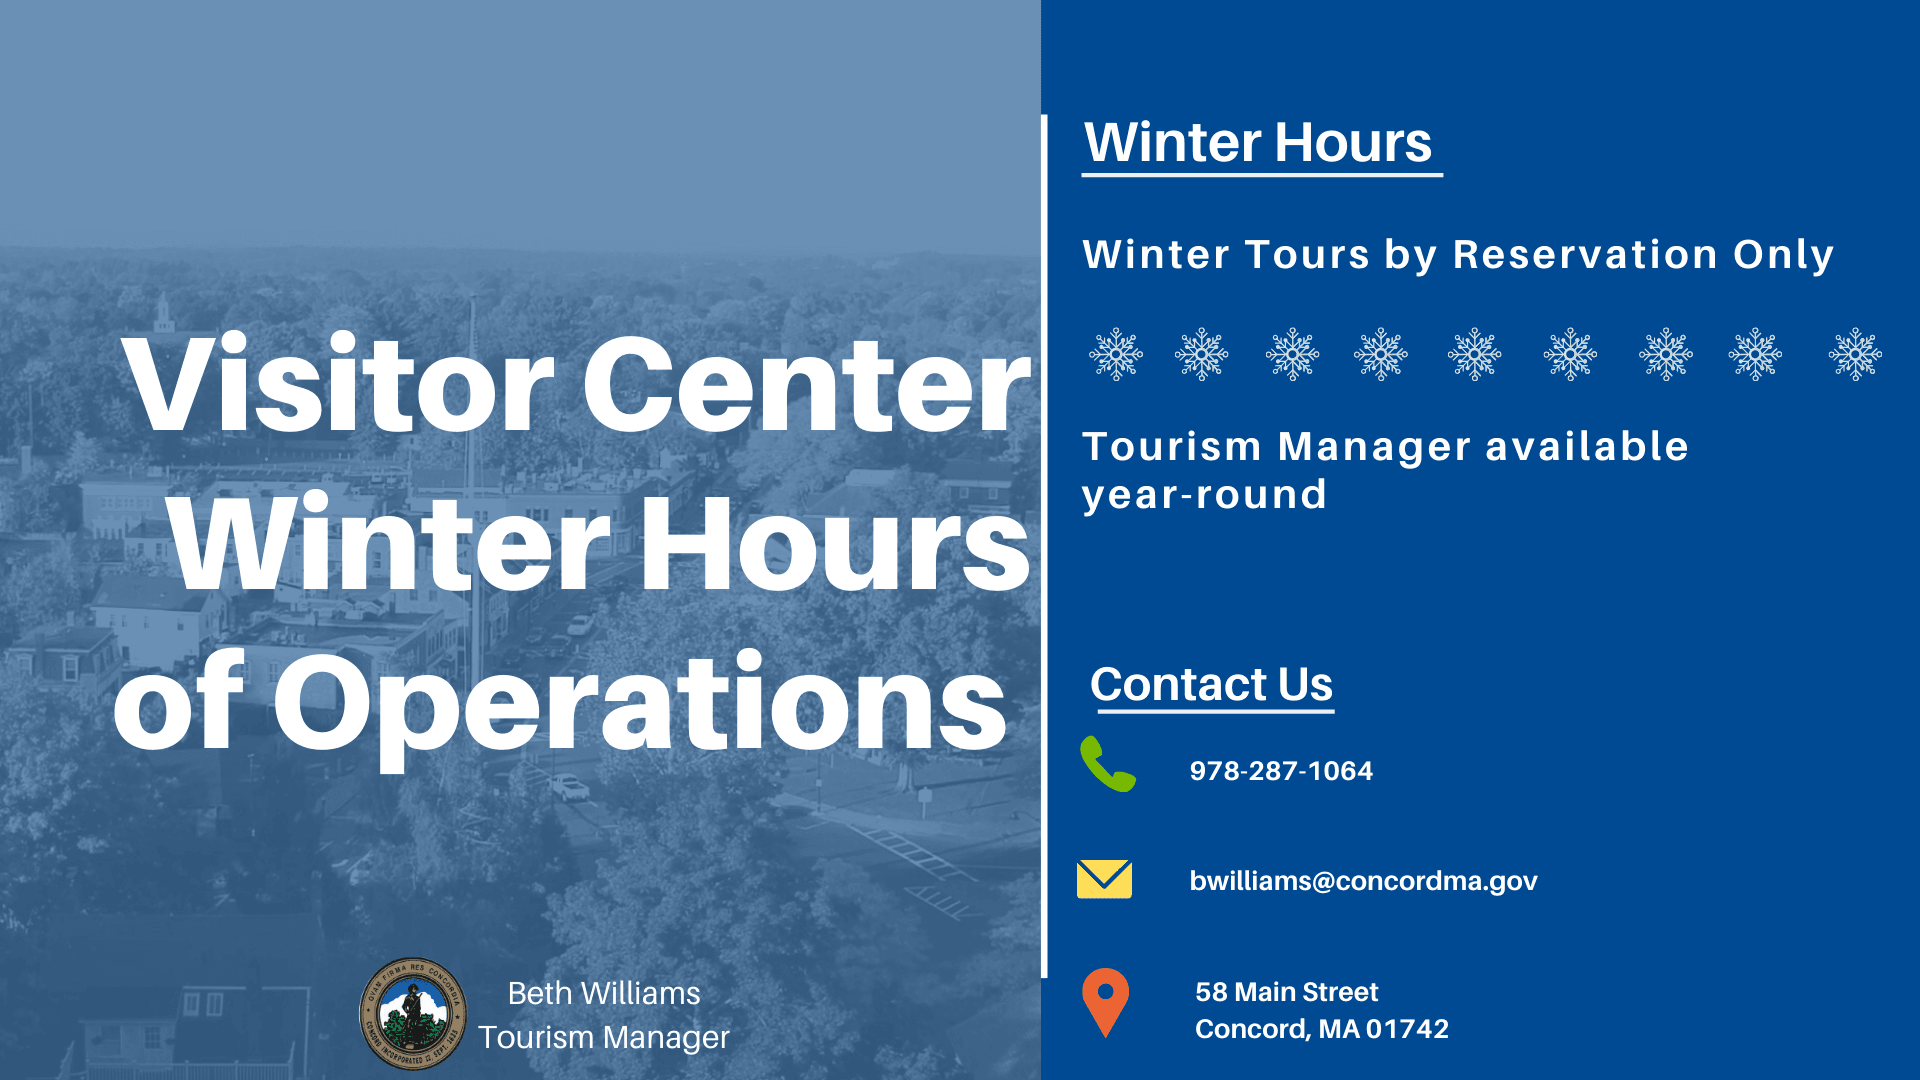 Hours of Operations and Contact Information ONLY Winter